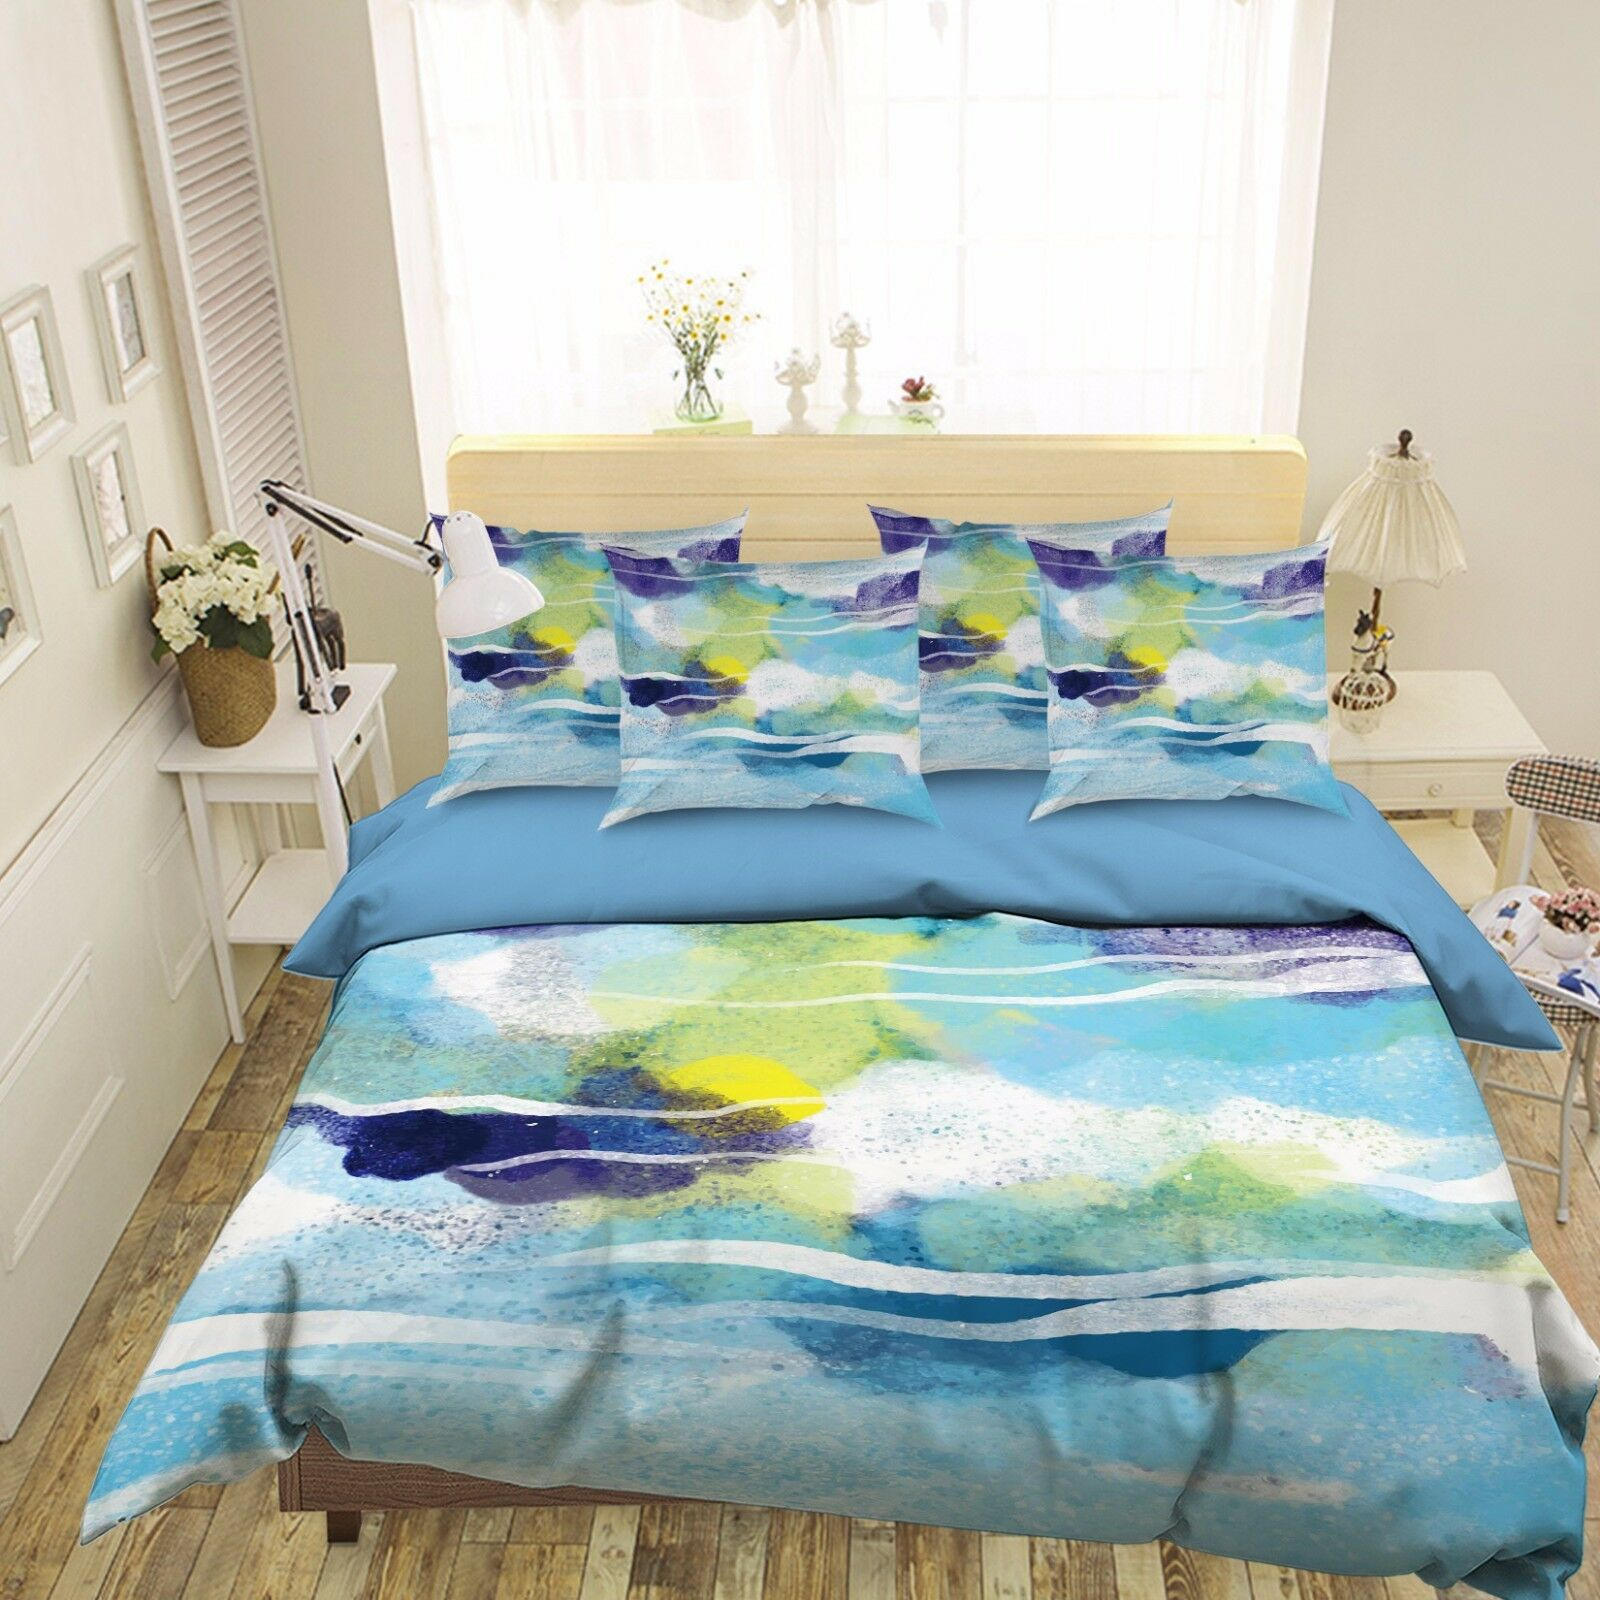 3D Abstract Watercolors 40 Bed Pillowcases Quilt Duvet Cover Set Single Queen CA